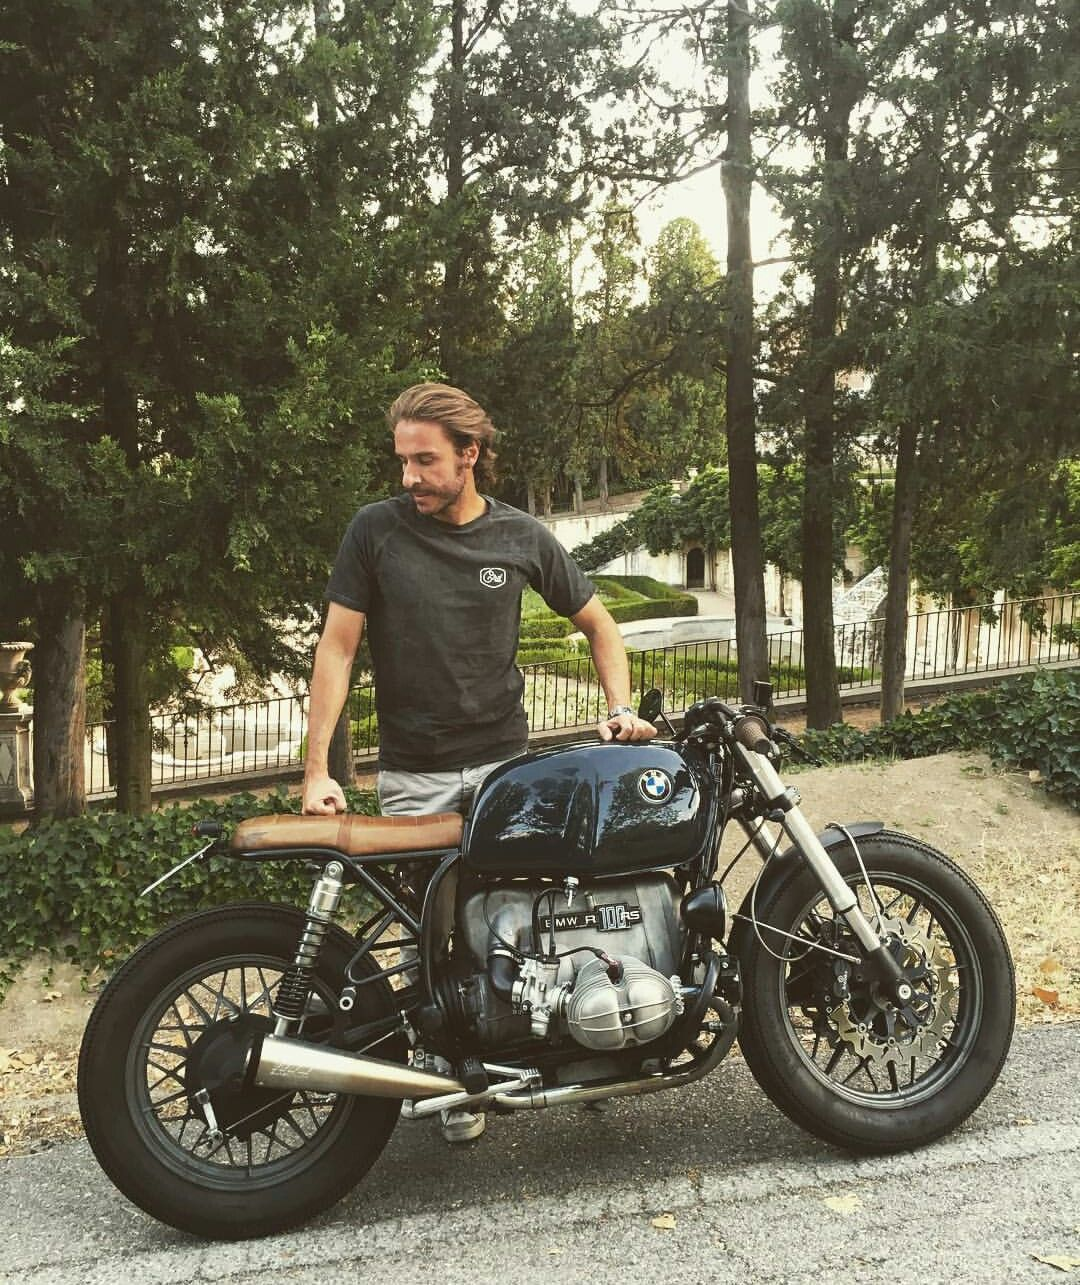 bmw custom cafe racer | moto | pinterest | custom cafe racer, bmw